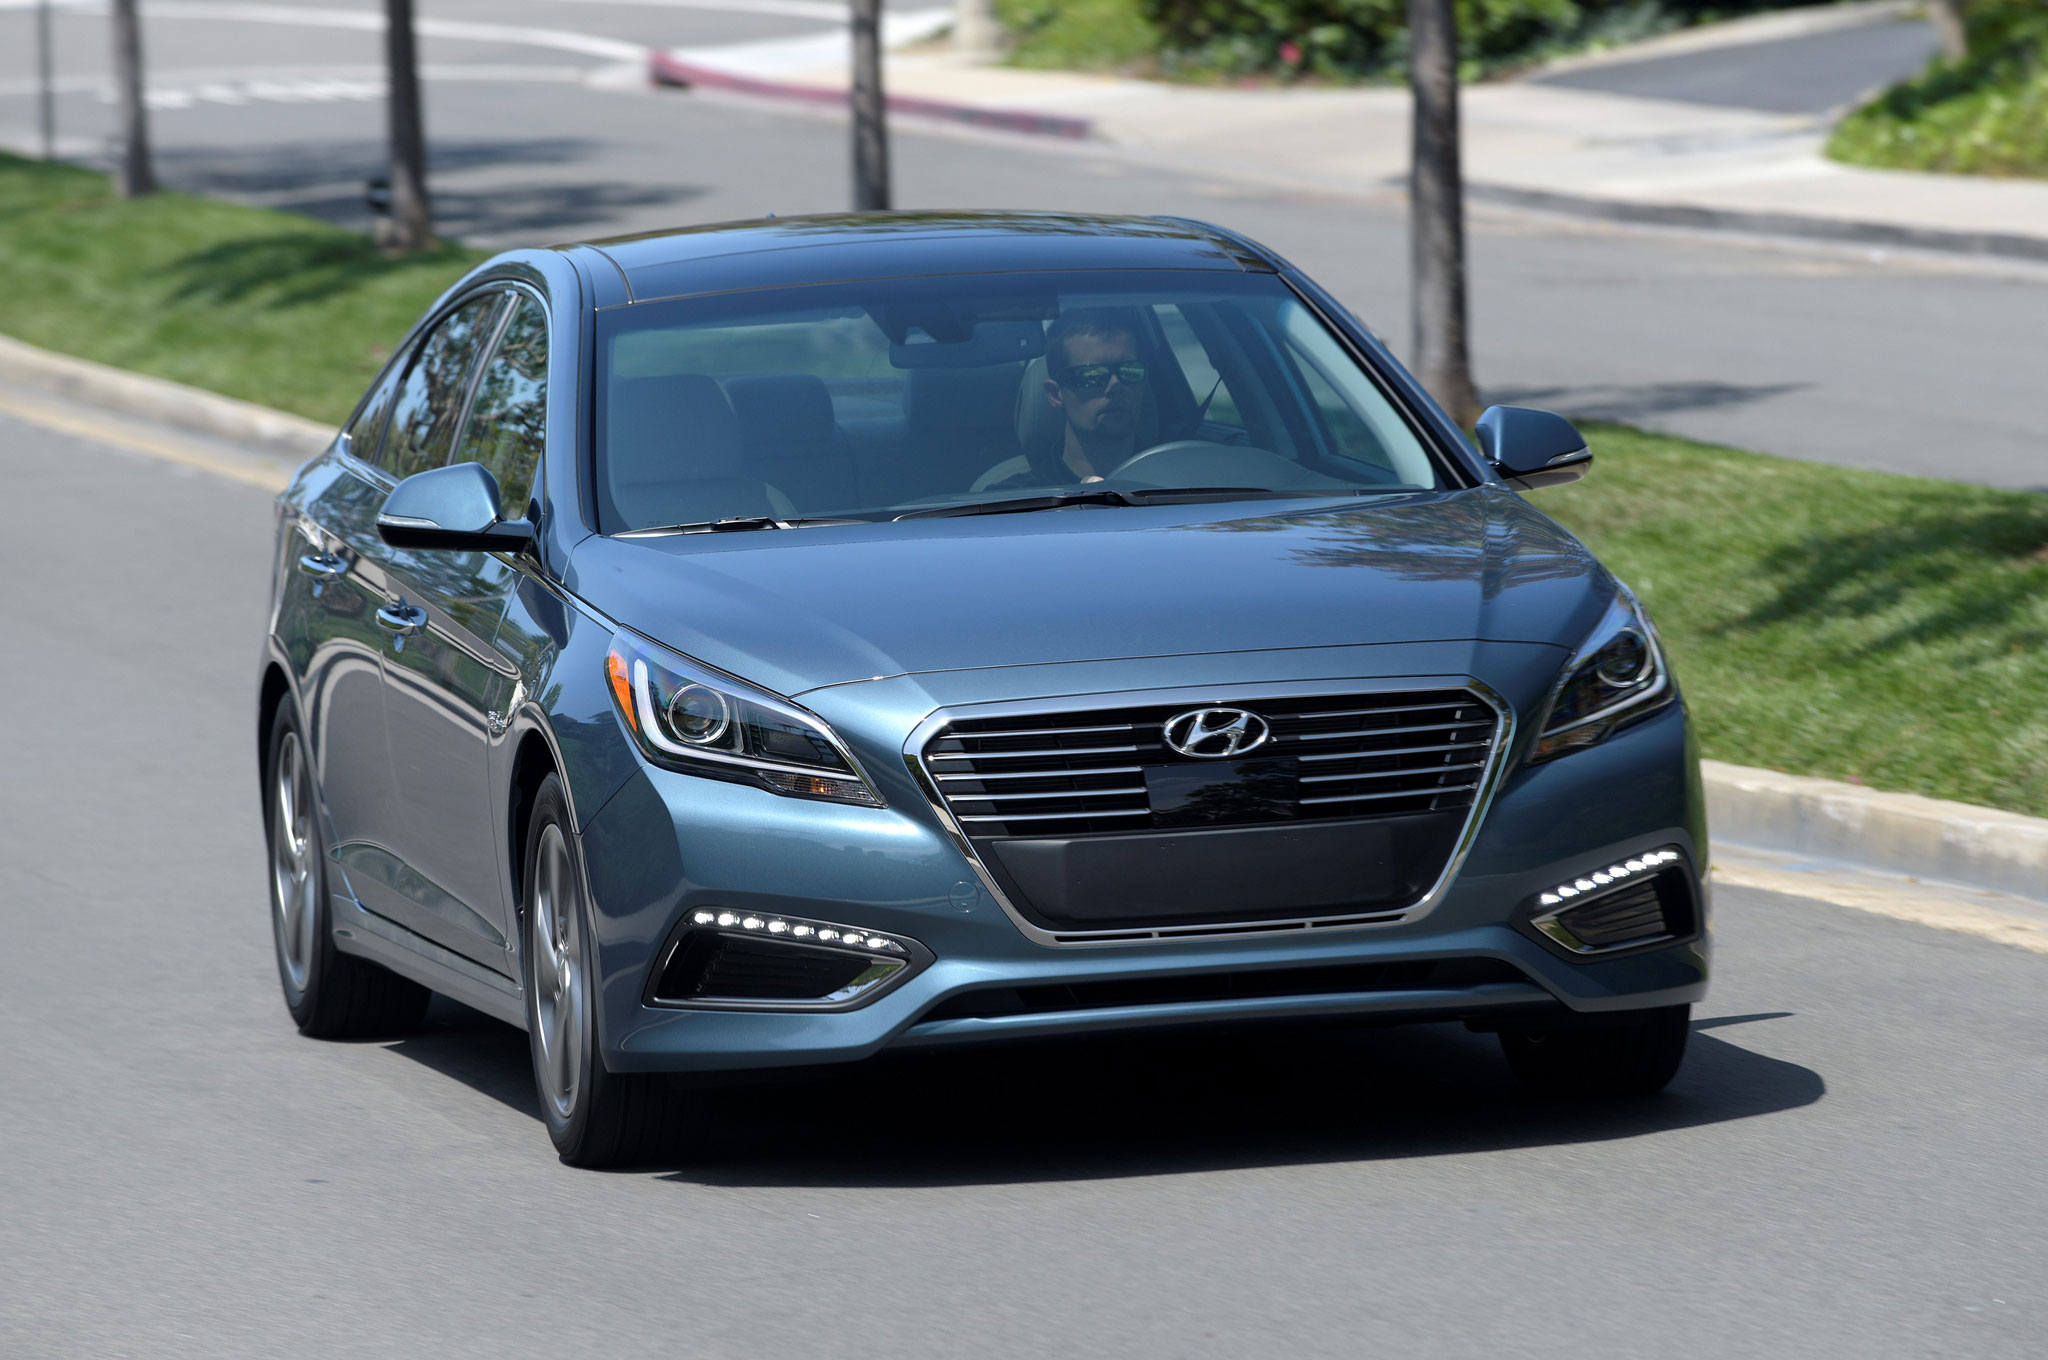 Report: Hyundai Planning to Launch 200 Mile EV in 2018   Automobile ...